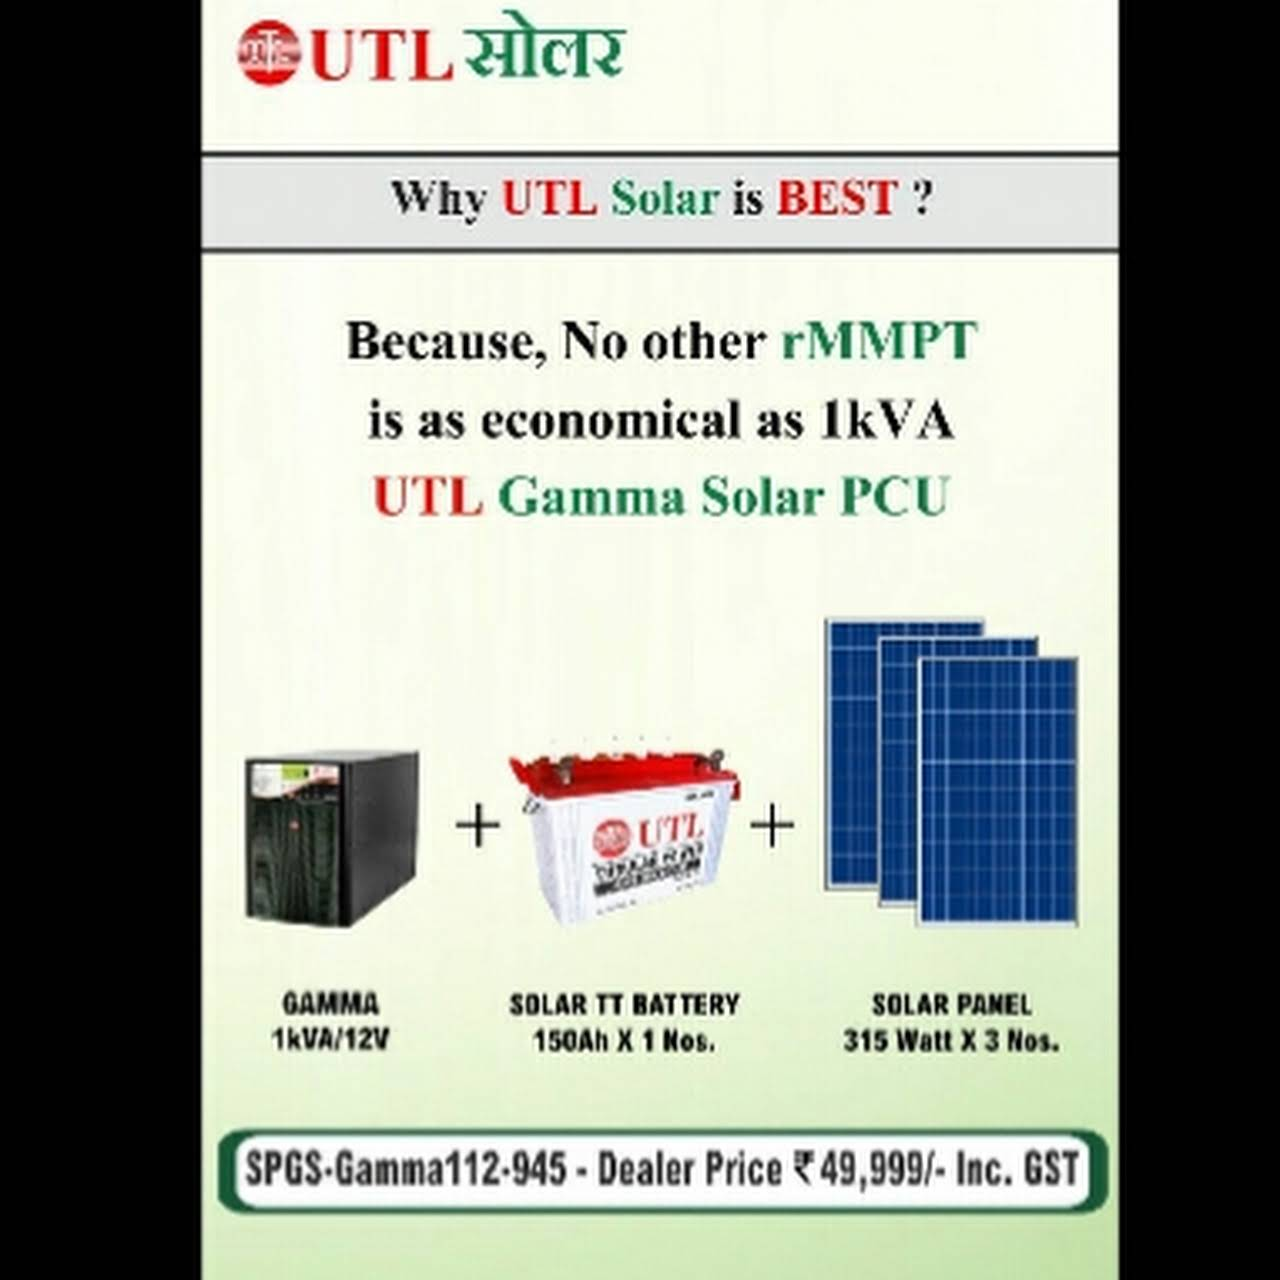 New Rama Agencies Supplier Contractor Largest Range Of Solar Products I E Solar Panel Accessories Fire Fighting Equipment I E Fire Extinguisher Access